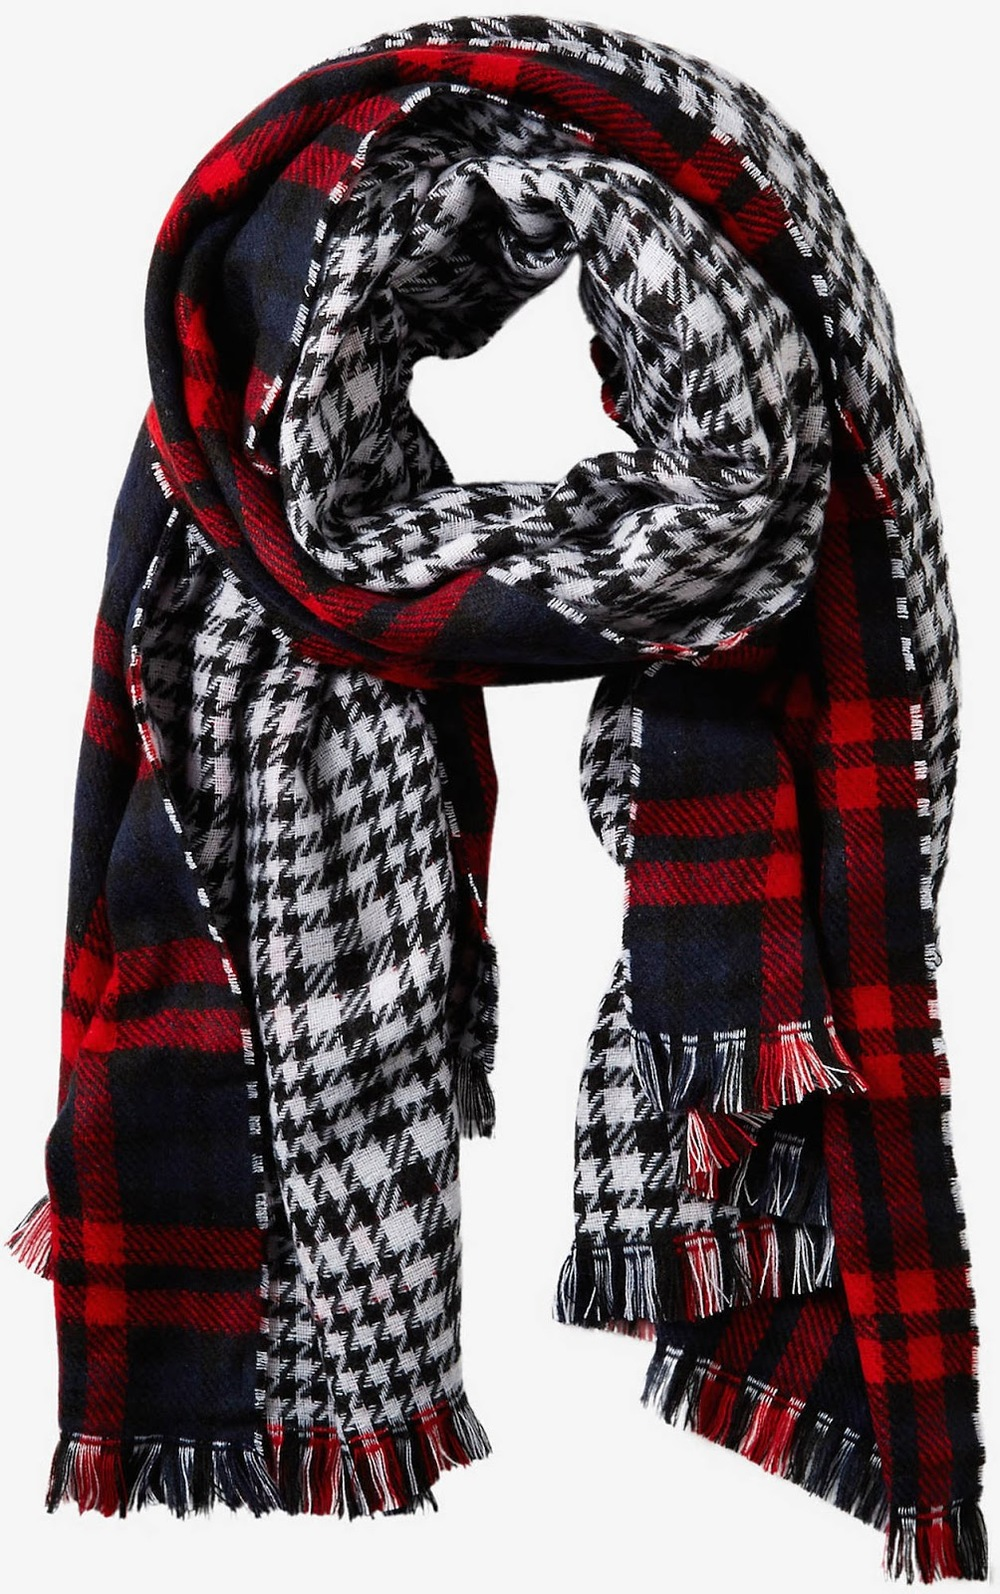 Reversible Double Plaid Blanket Scarf, $49.90 at Express.com.